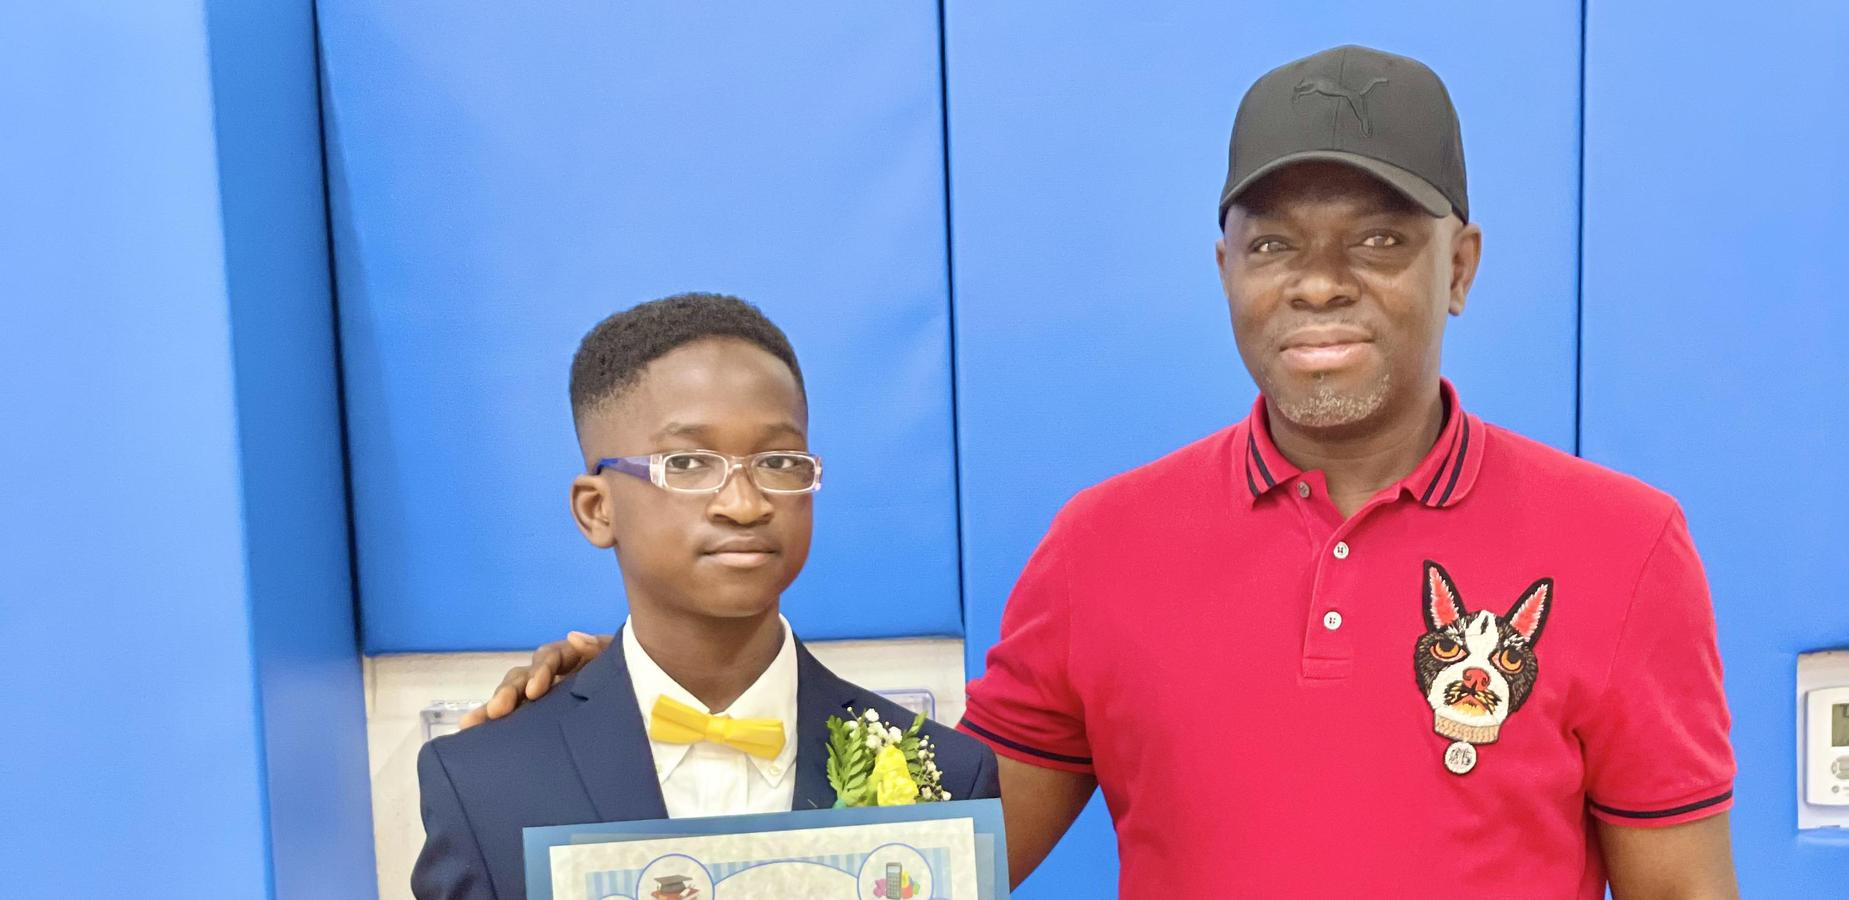 graduate and father